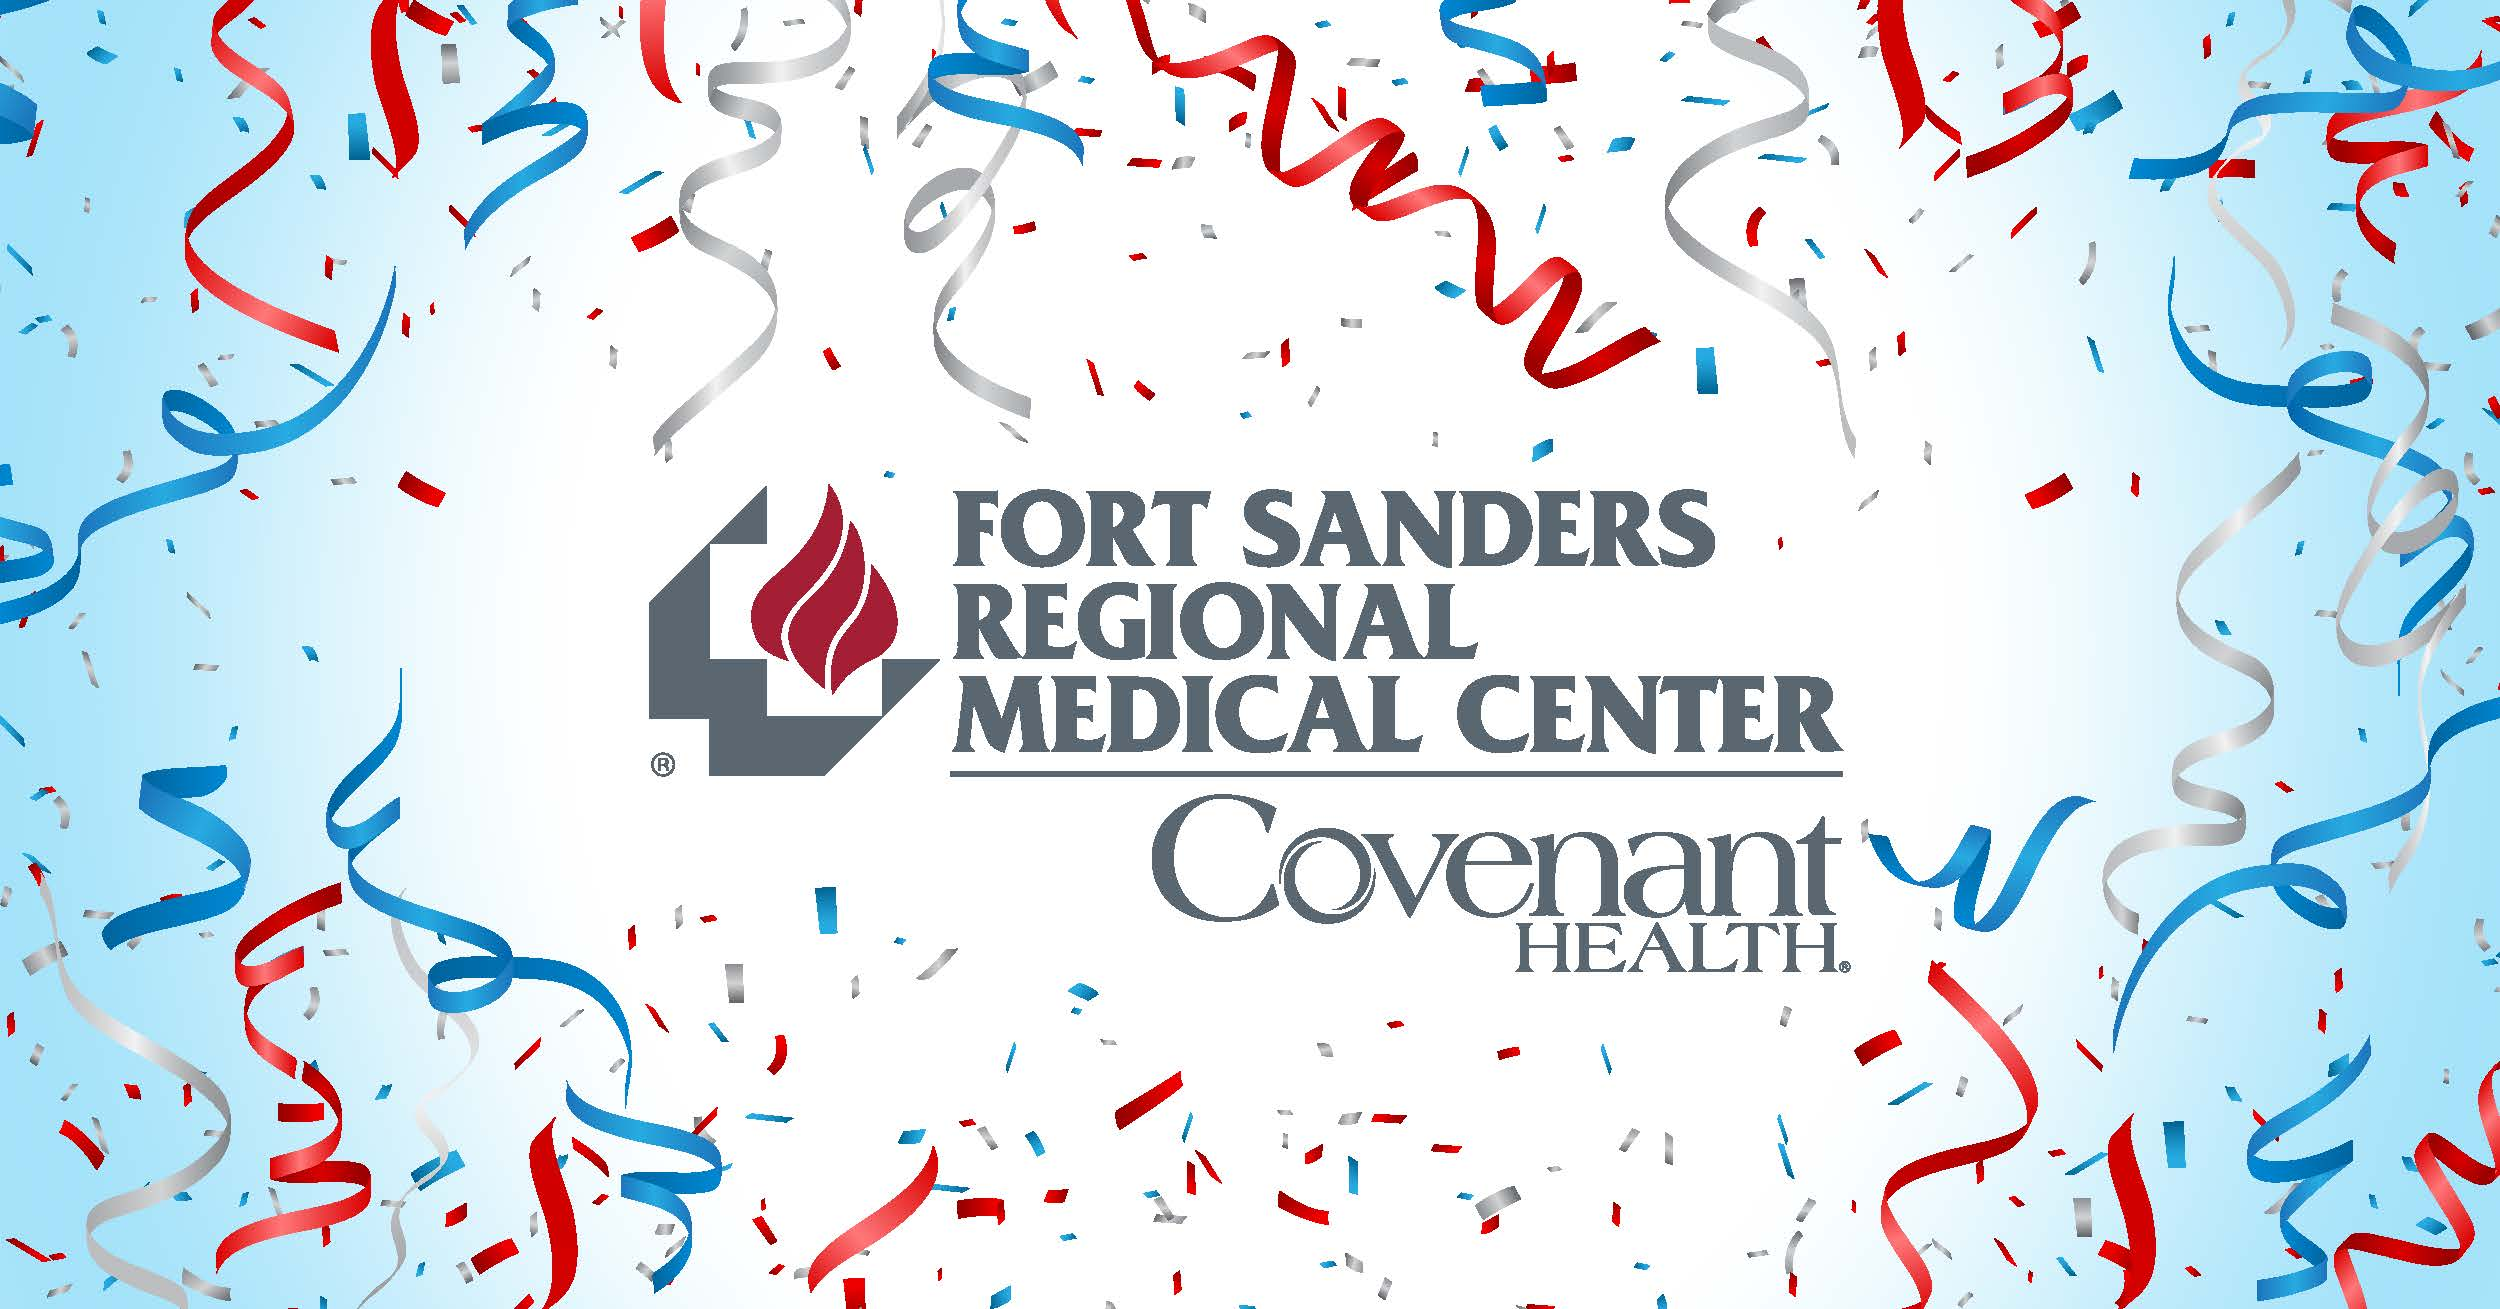 2018: A banner year for Fort Sanders Regional Medical Center